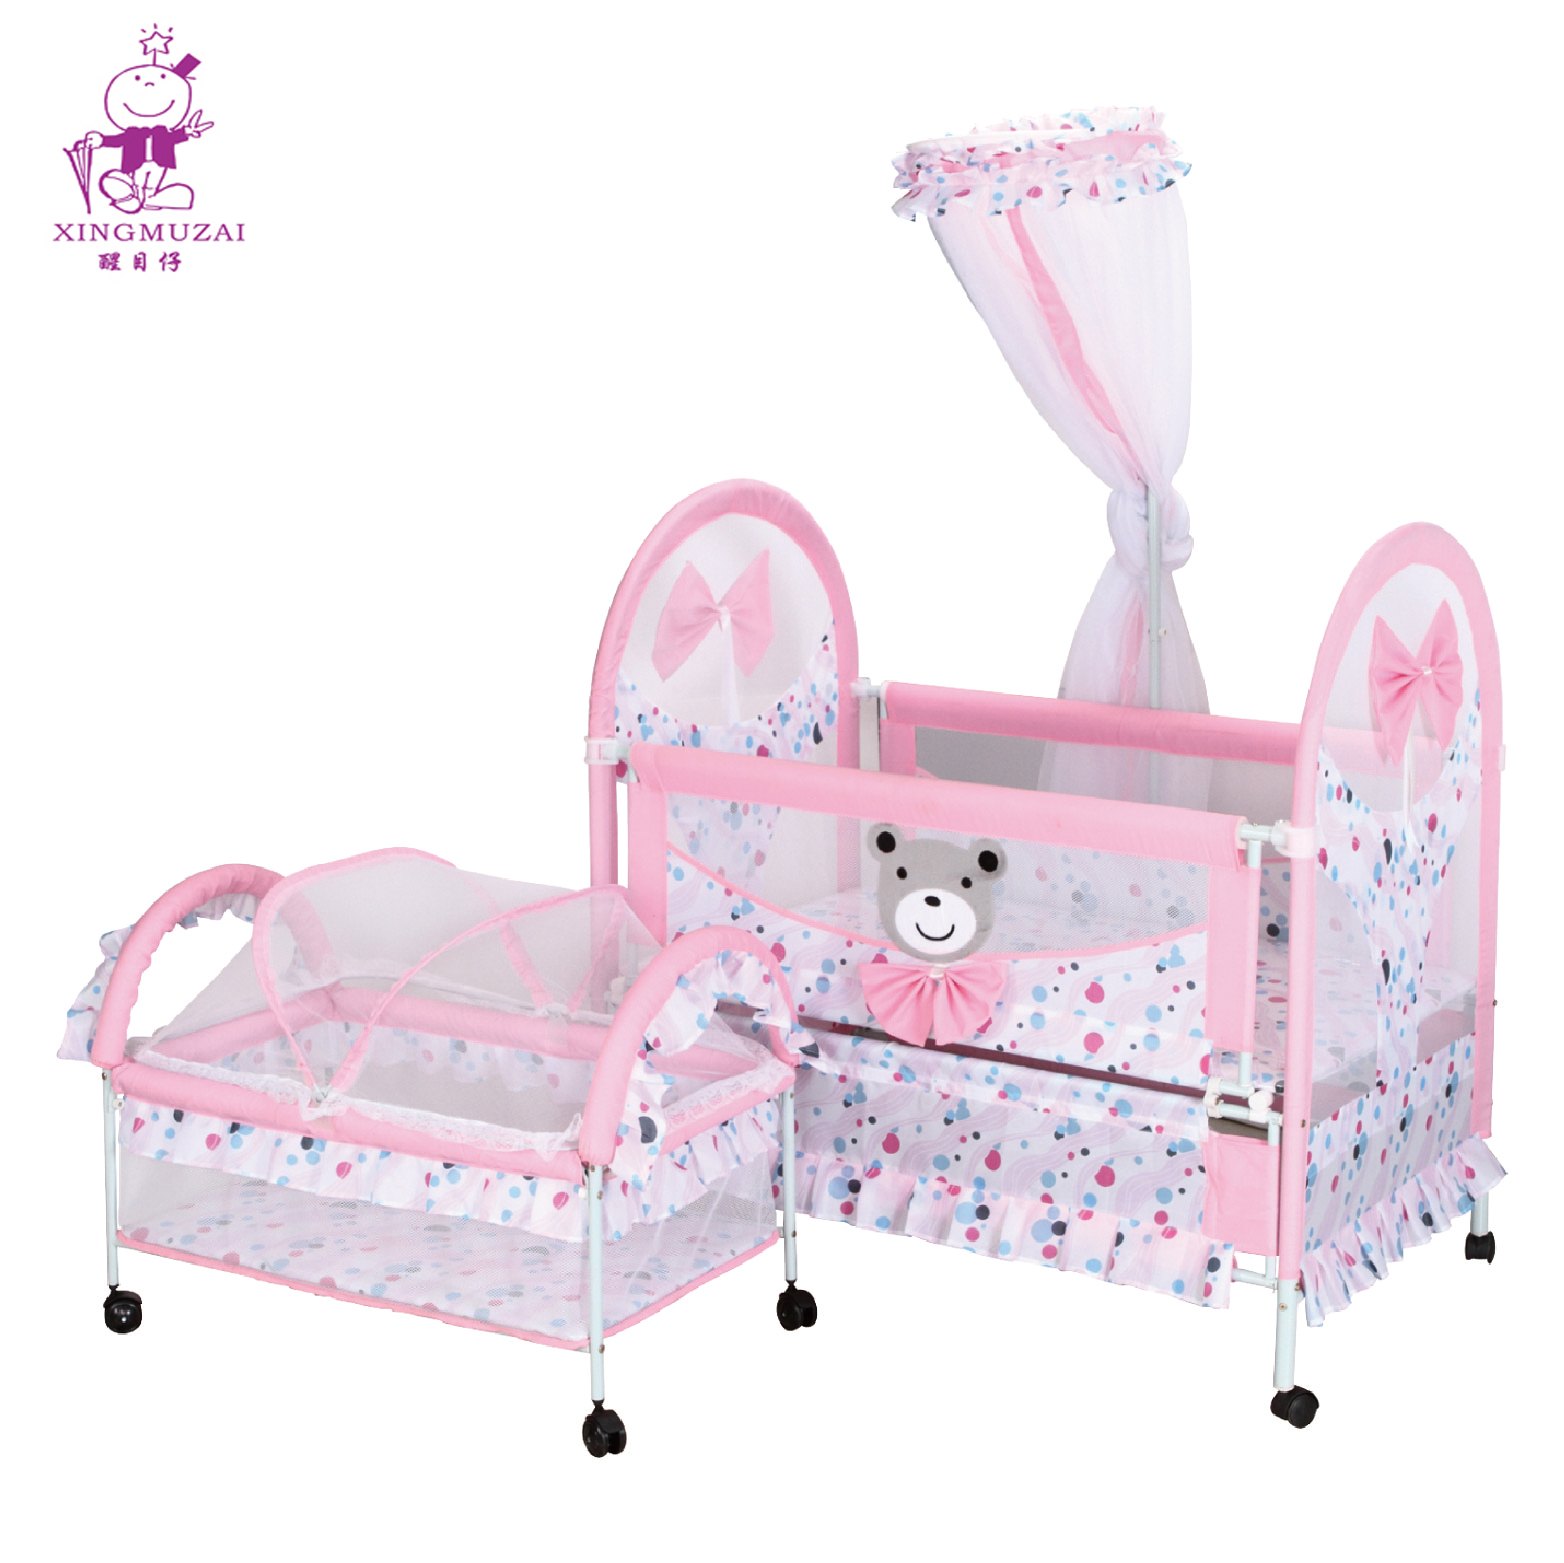 Portable Iron Metal Baby Cot Firm Children Bed With Mosquito Net Buy Baby Metal Crib Metal Firm Children Bed Portable Iron Metal Baby Cot Firm Children Bed With Mosquito Net Product On Alibaba Com